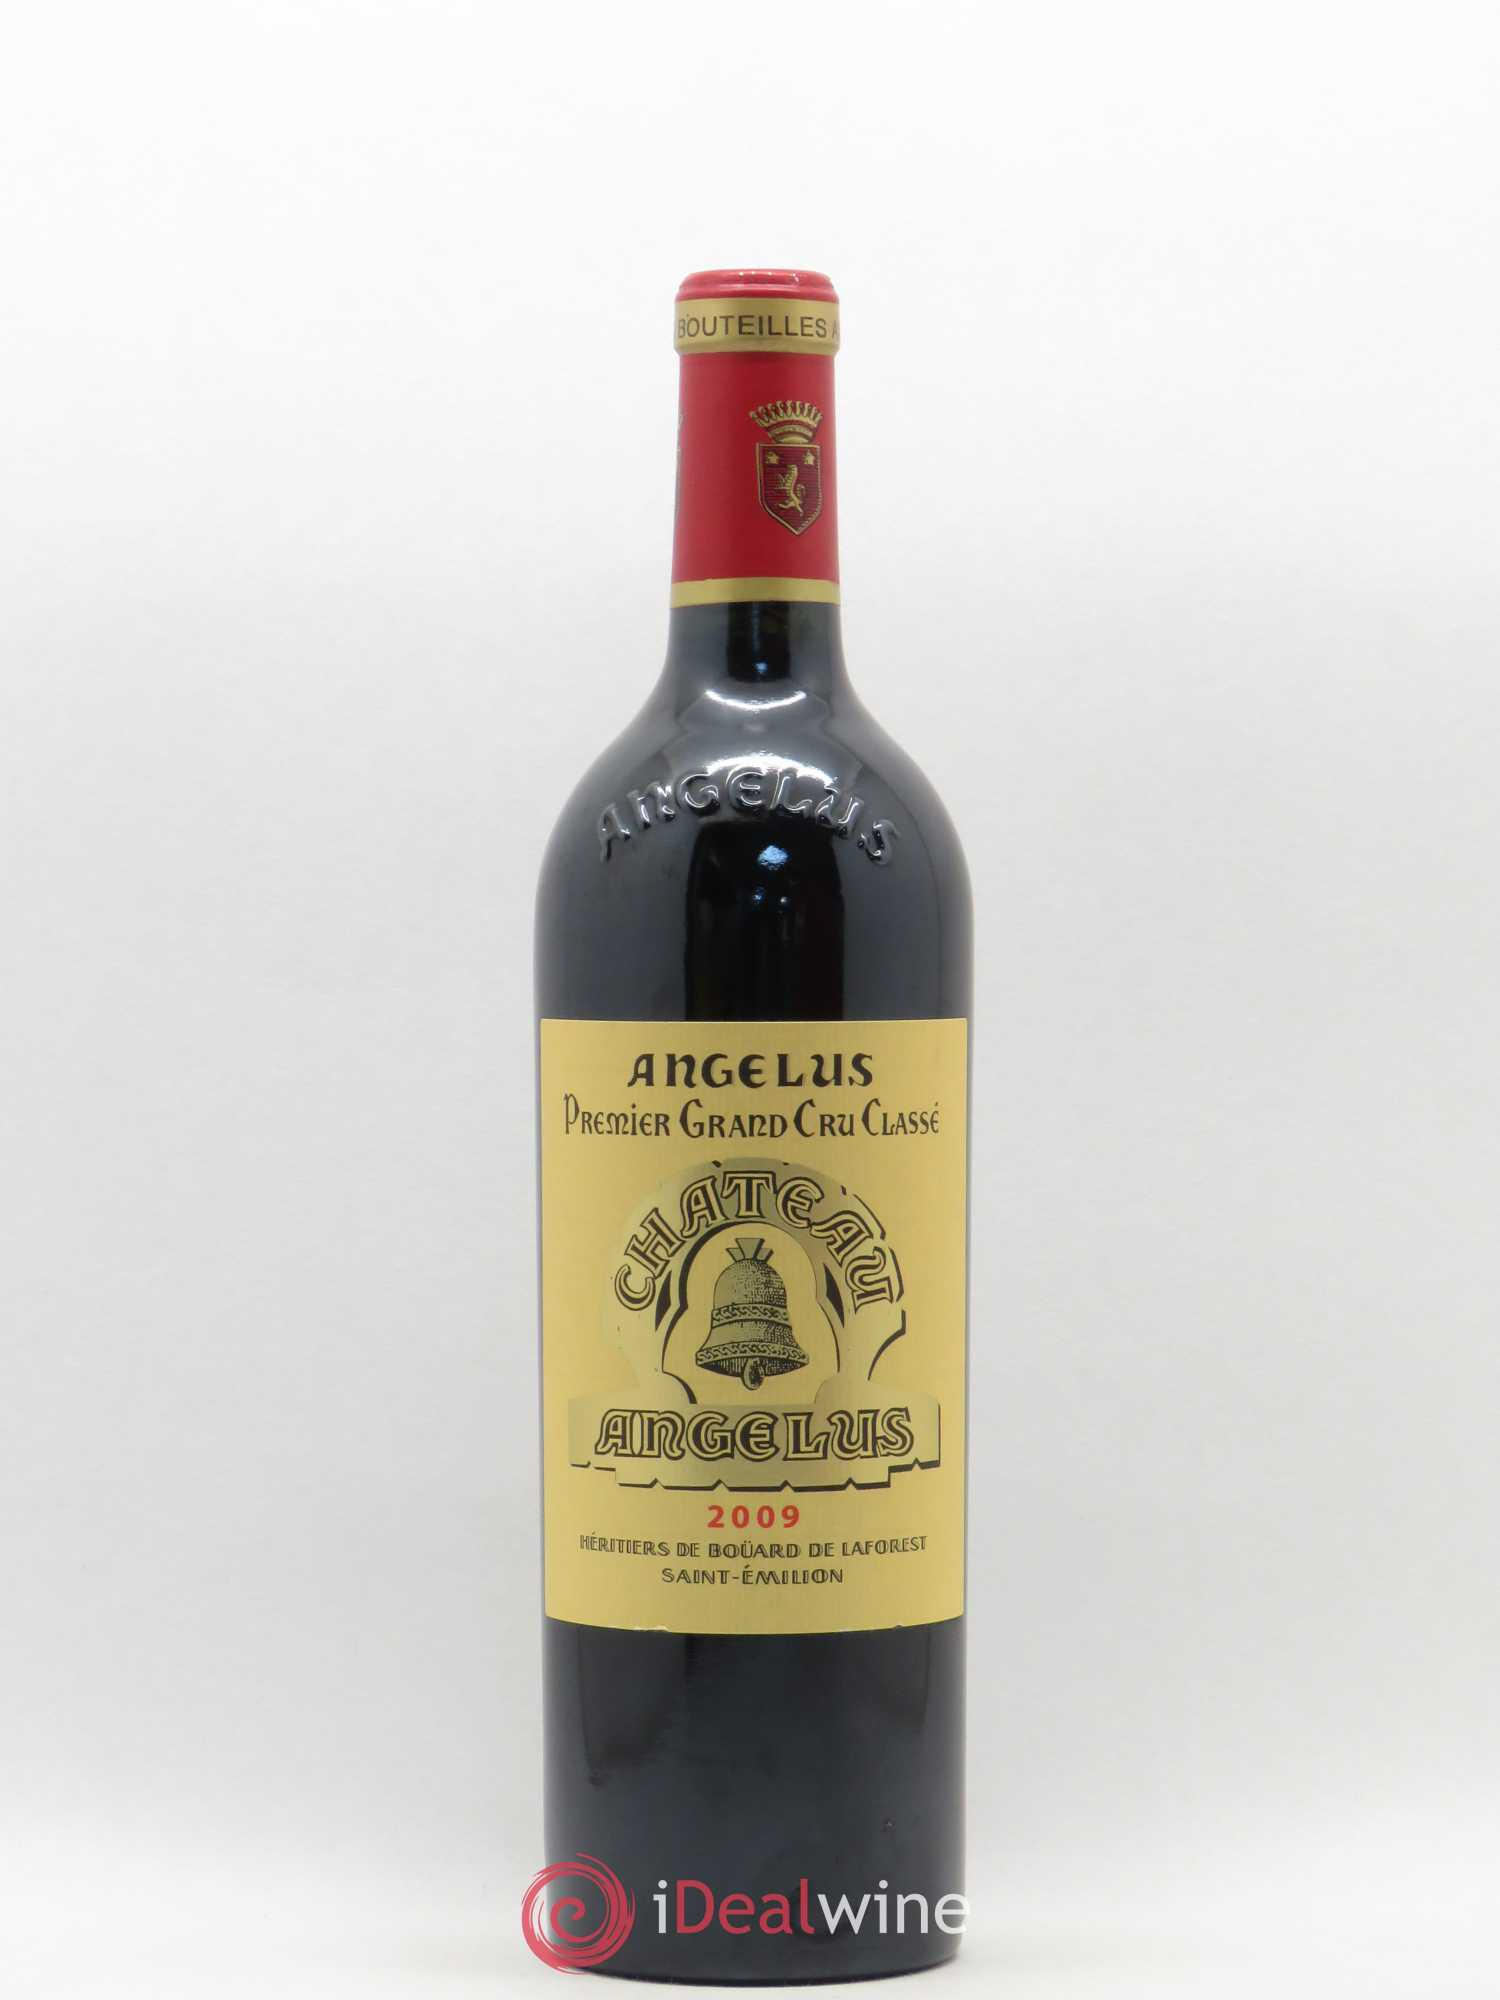 Château Angélus 1er Grand Cru Classé A  2009 - Lot of 1 Bottle